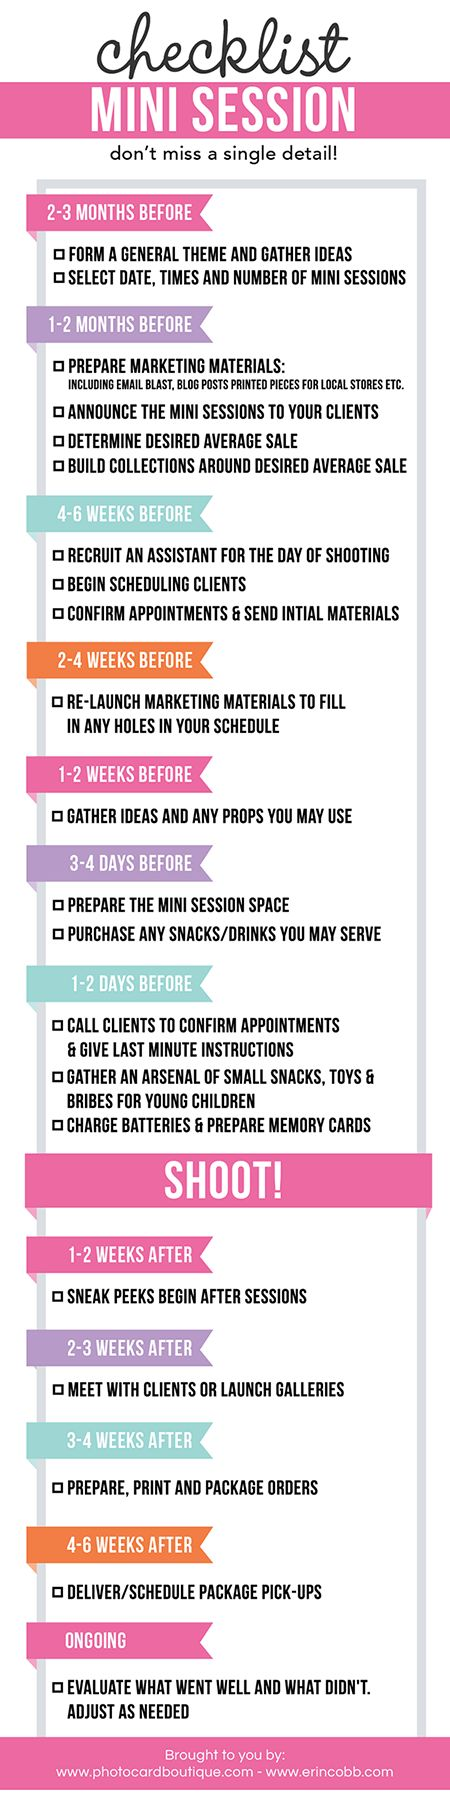 Free - Photographers Mini Session Checklist